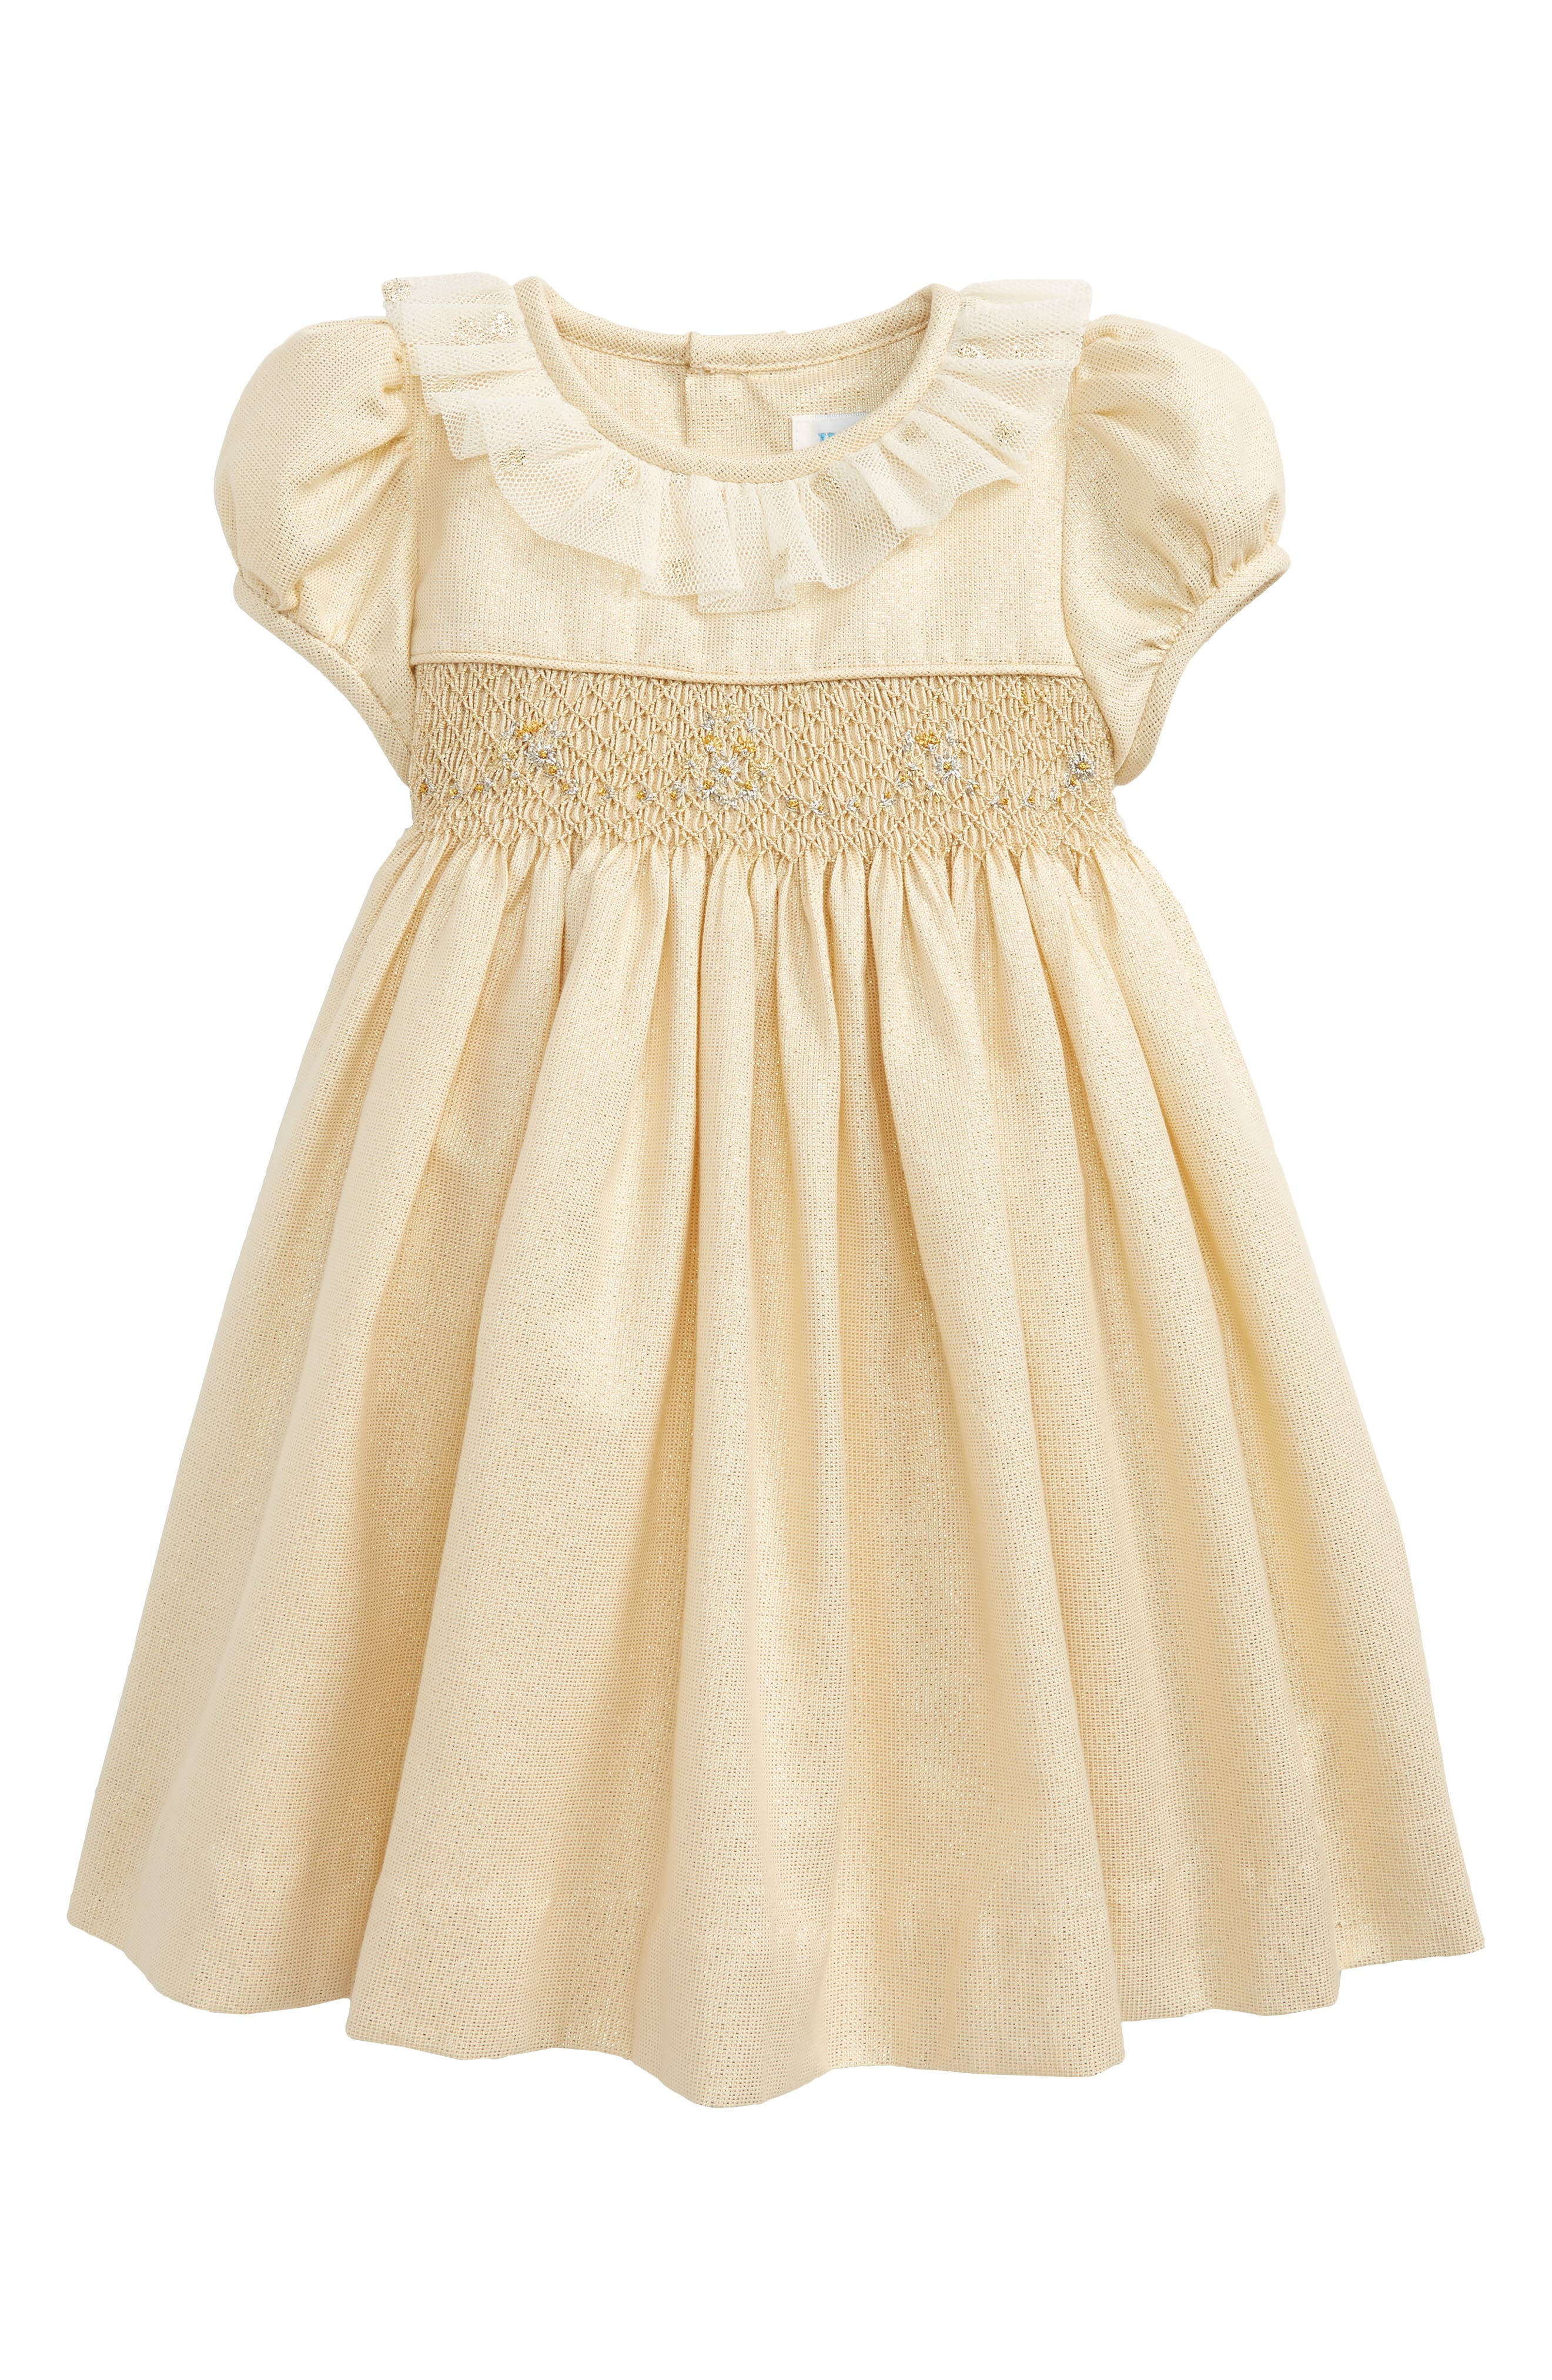 Jacquard Smocked Dress,                             Main thumbnail 1, color,                             Gold